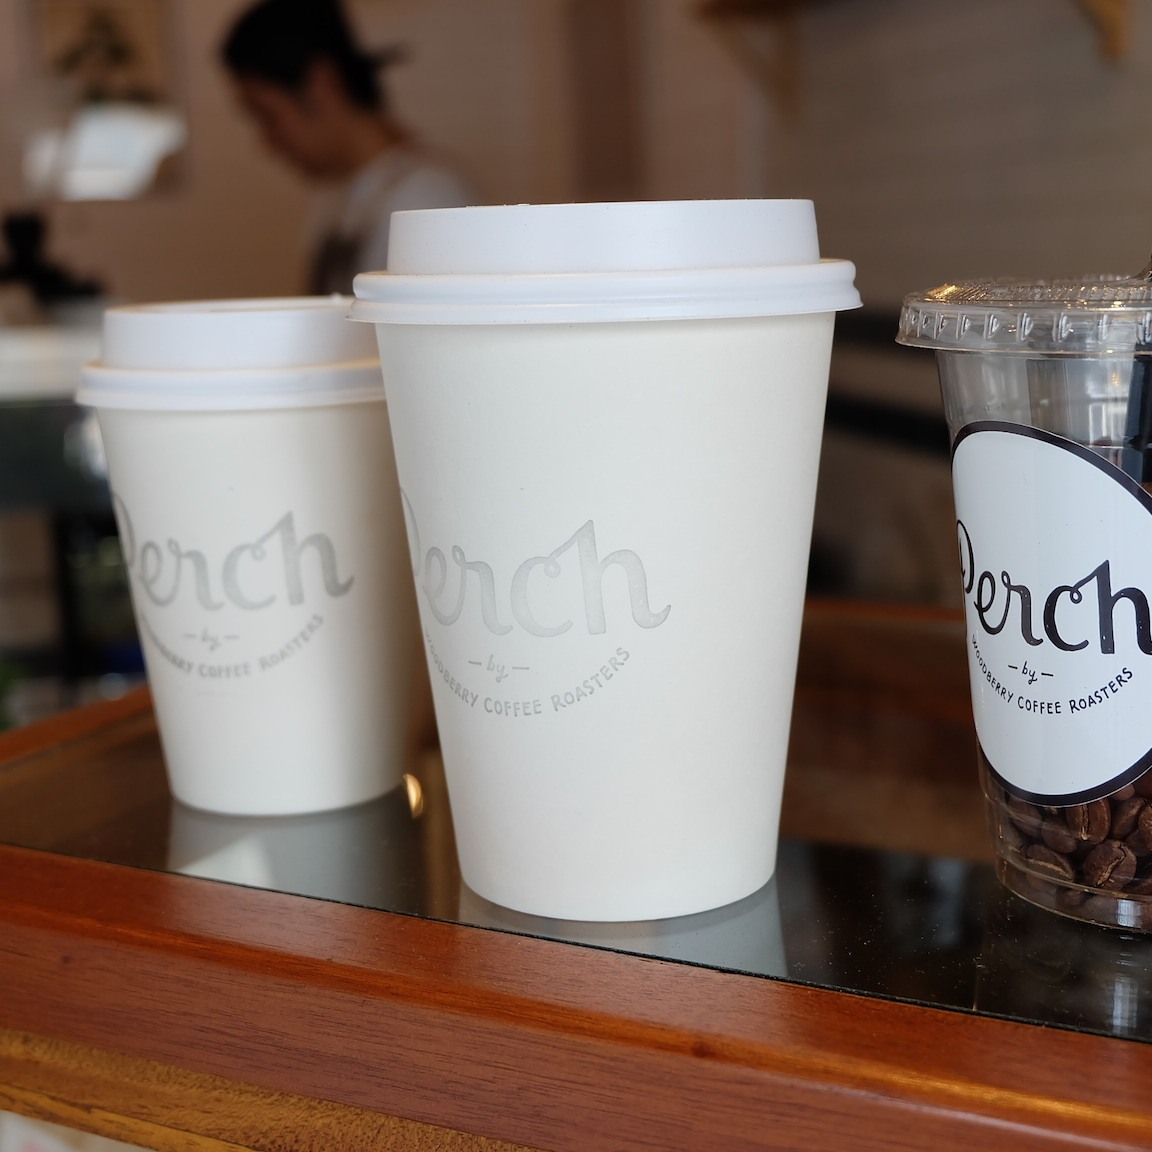 To-Go Coffee cups at Perch by Woodberry Coffee Roasters Tokyo Japan